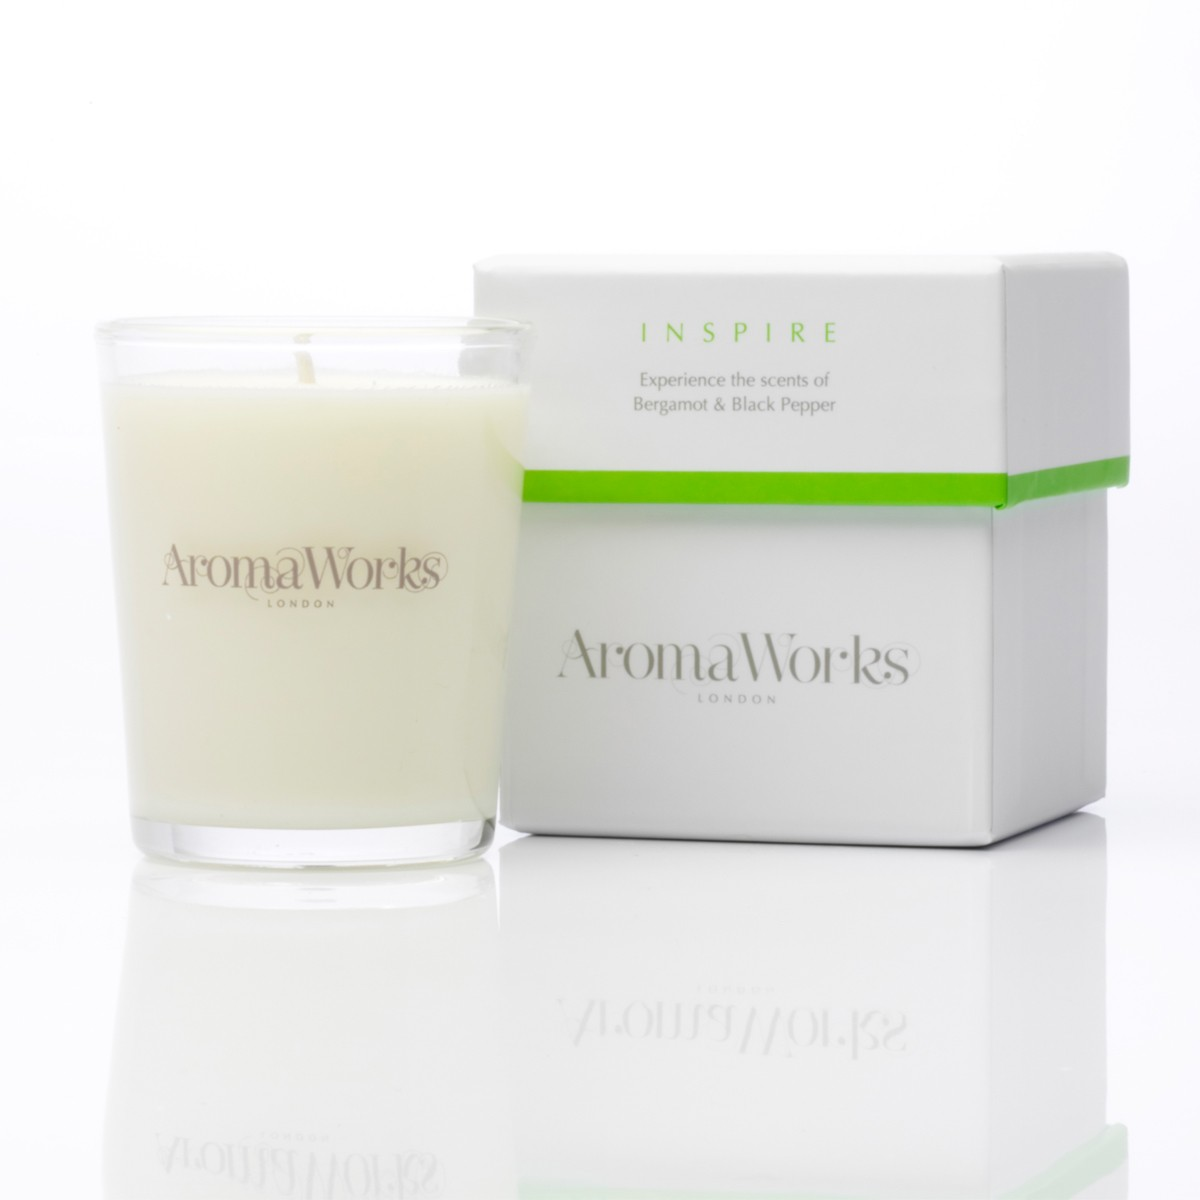 Aromaworks Inspire Candle 10 cl